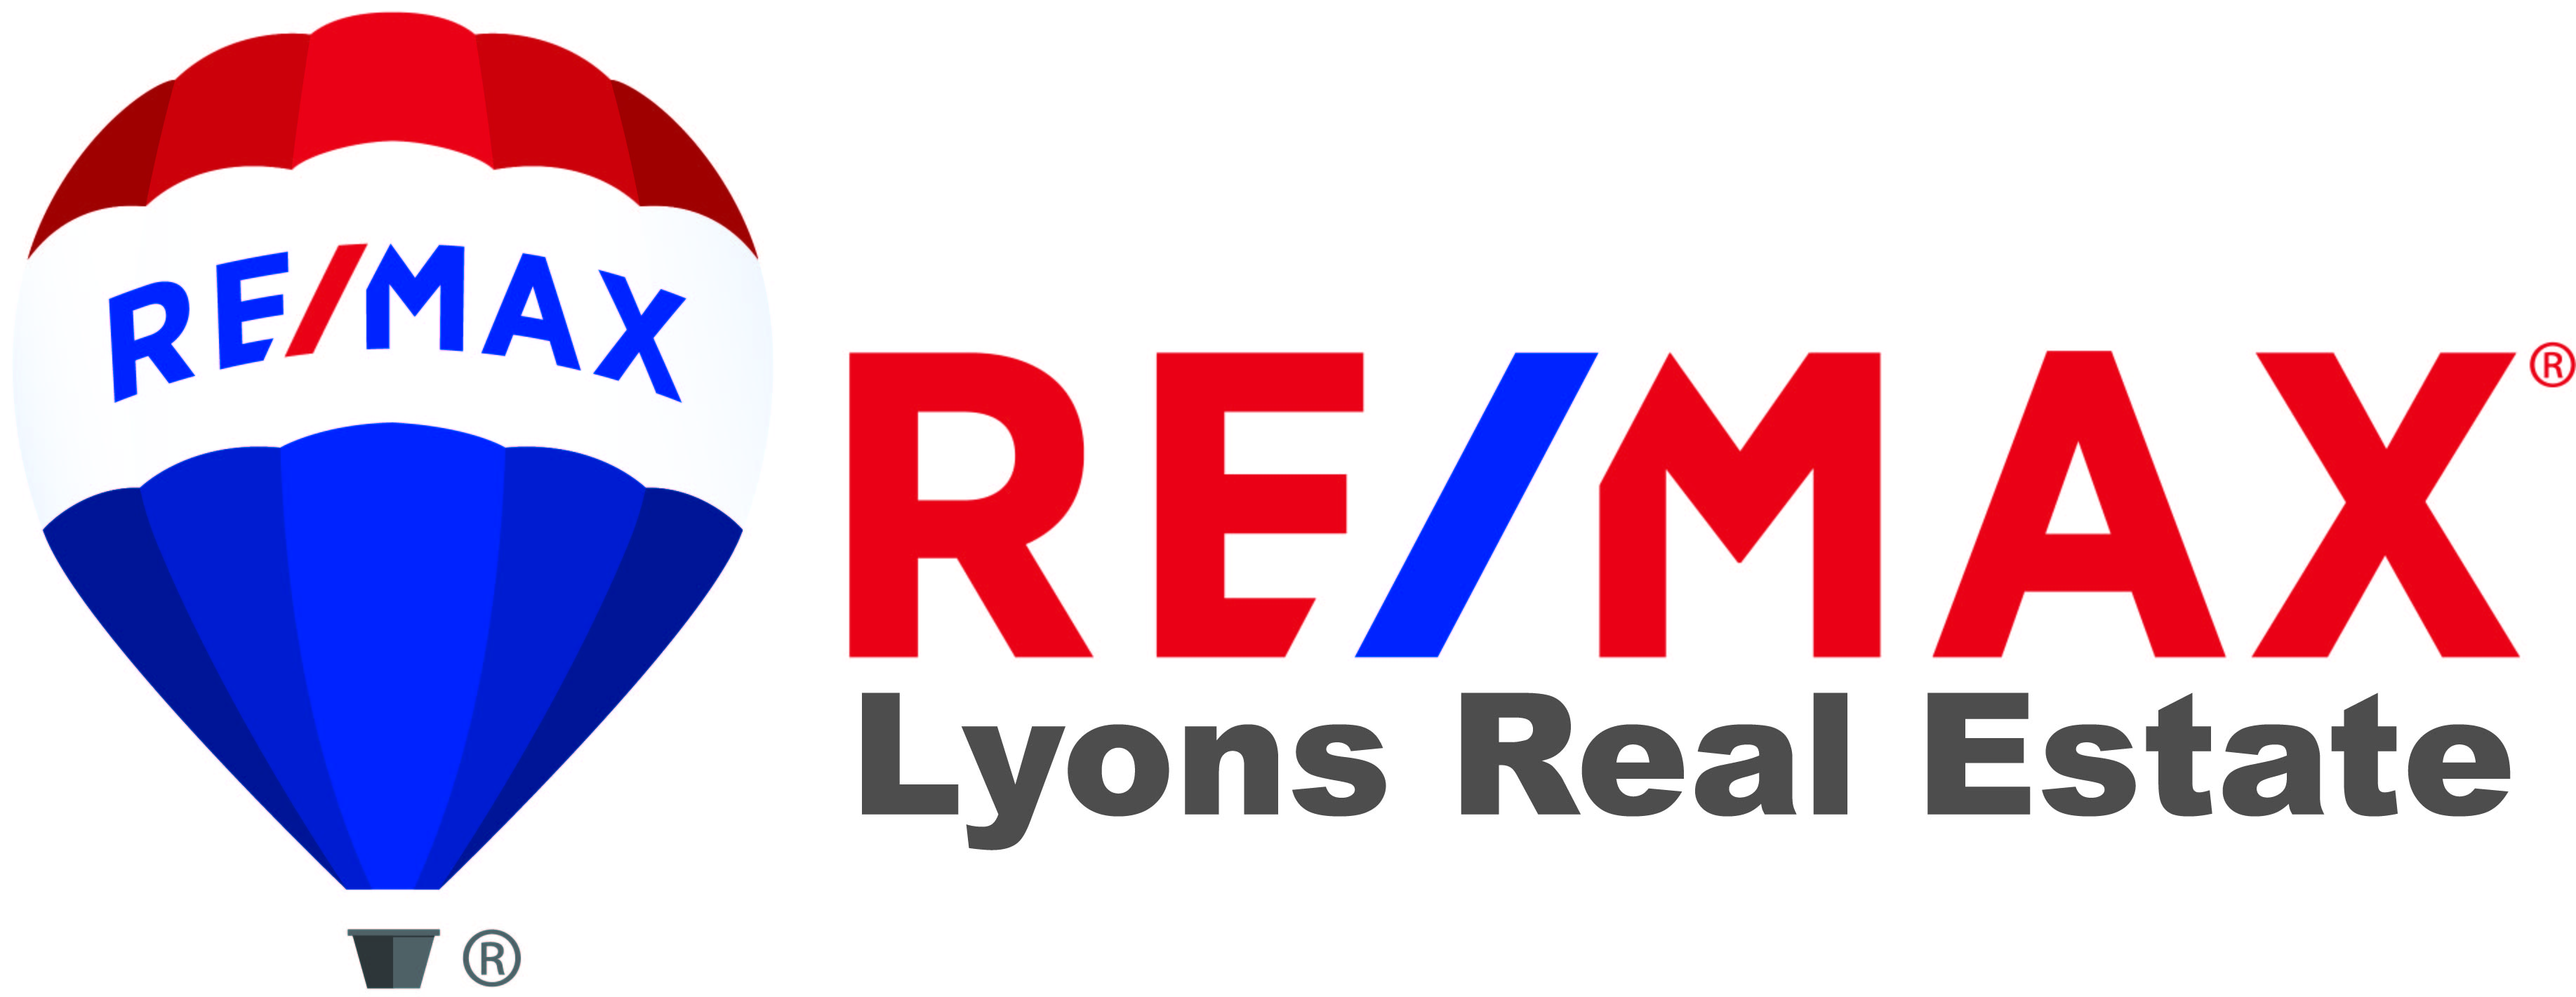 Lyons Real Estate logo